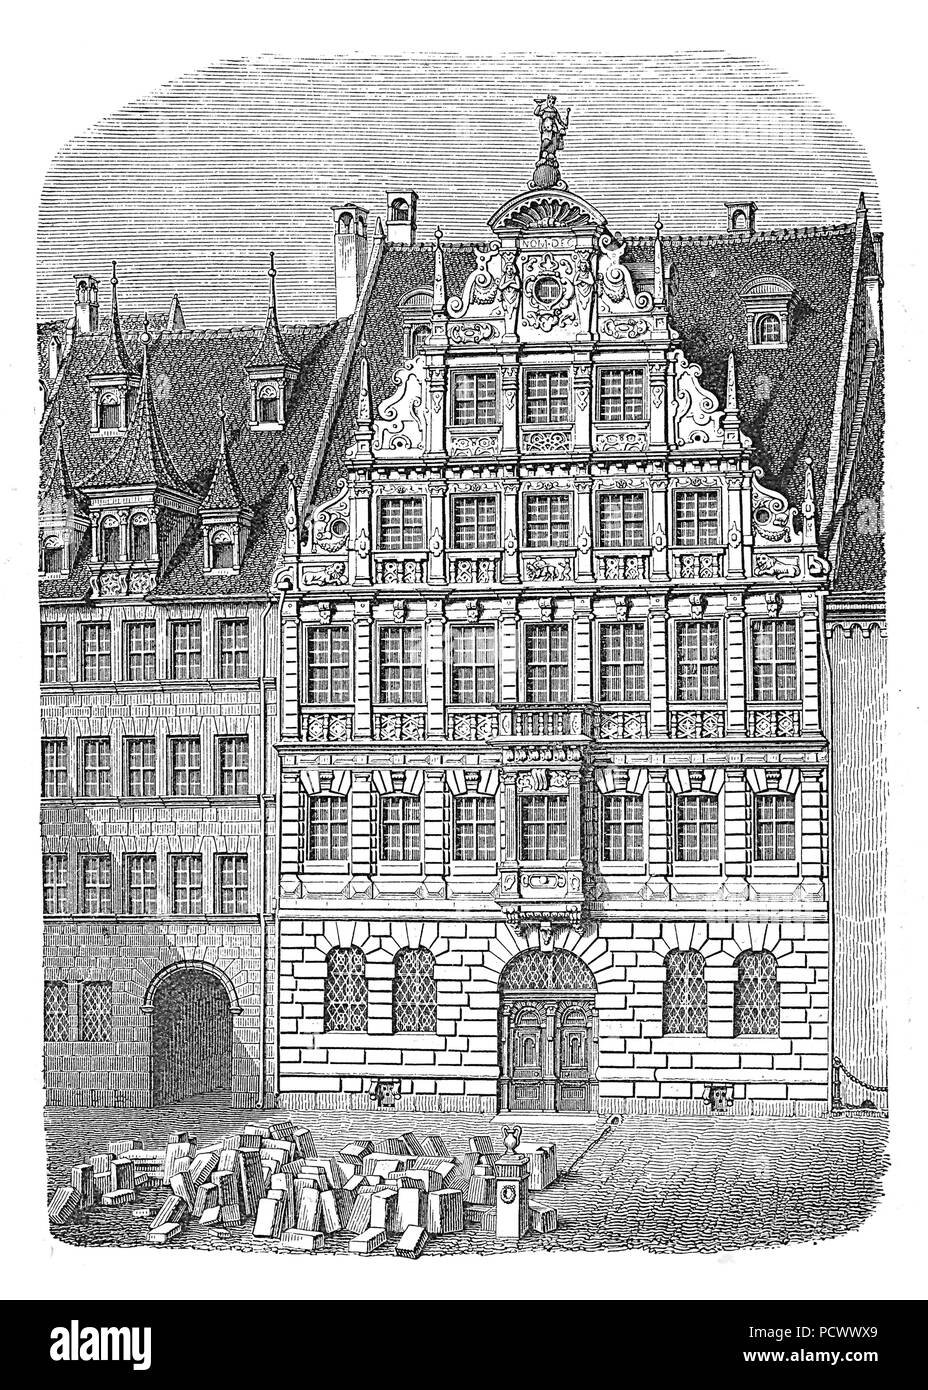 Peller House in Nuremberg, built in 1602-07 in Renaissance style, vintage engraving. Damaged in World War II, rebuilt with a modern facade. Stock Photo